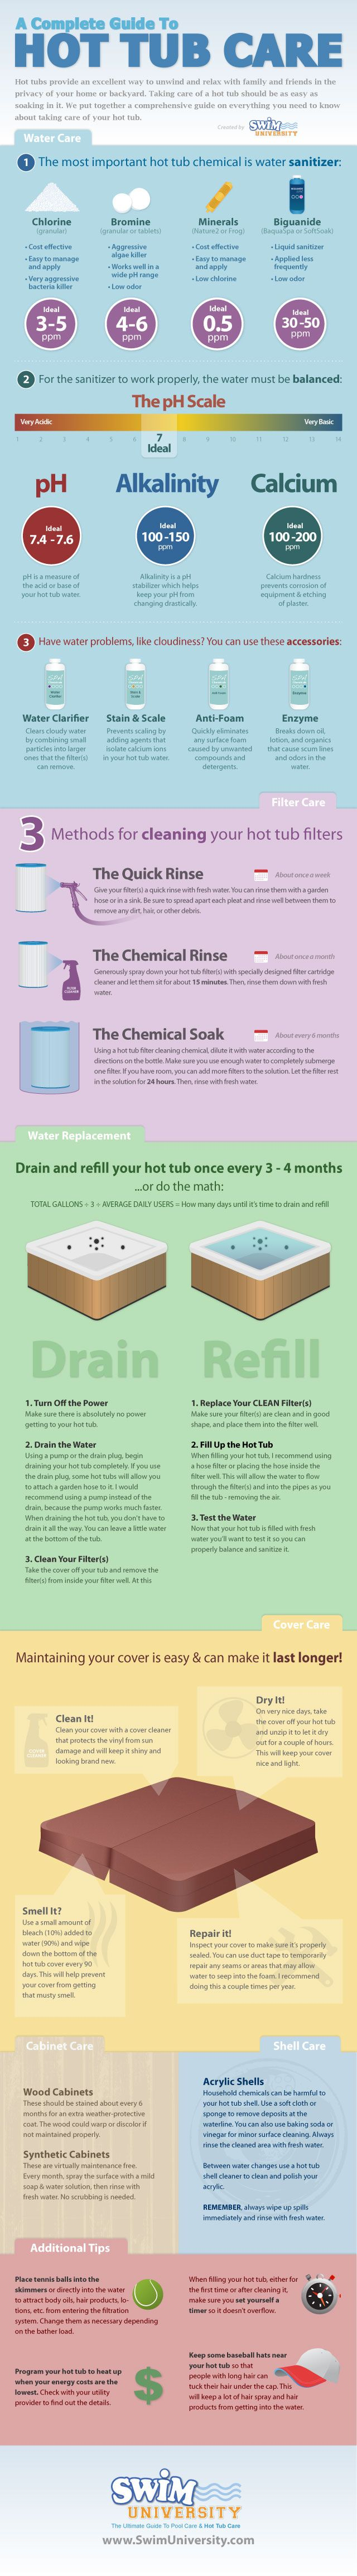 Our goal is to make hot tub maintenance easy to understand, and even easier to do. That's why we put together a comprehensive infographic on everything you need to know about taking care of a hot tub.